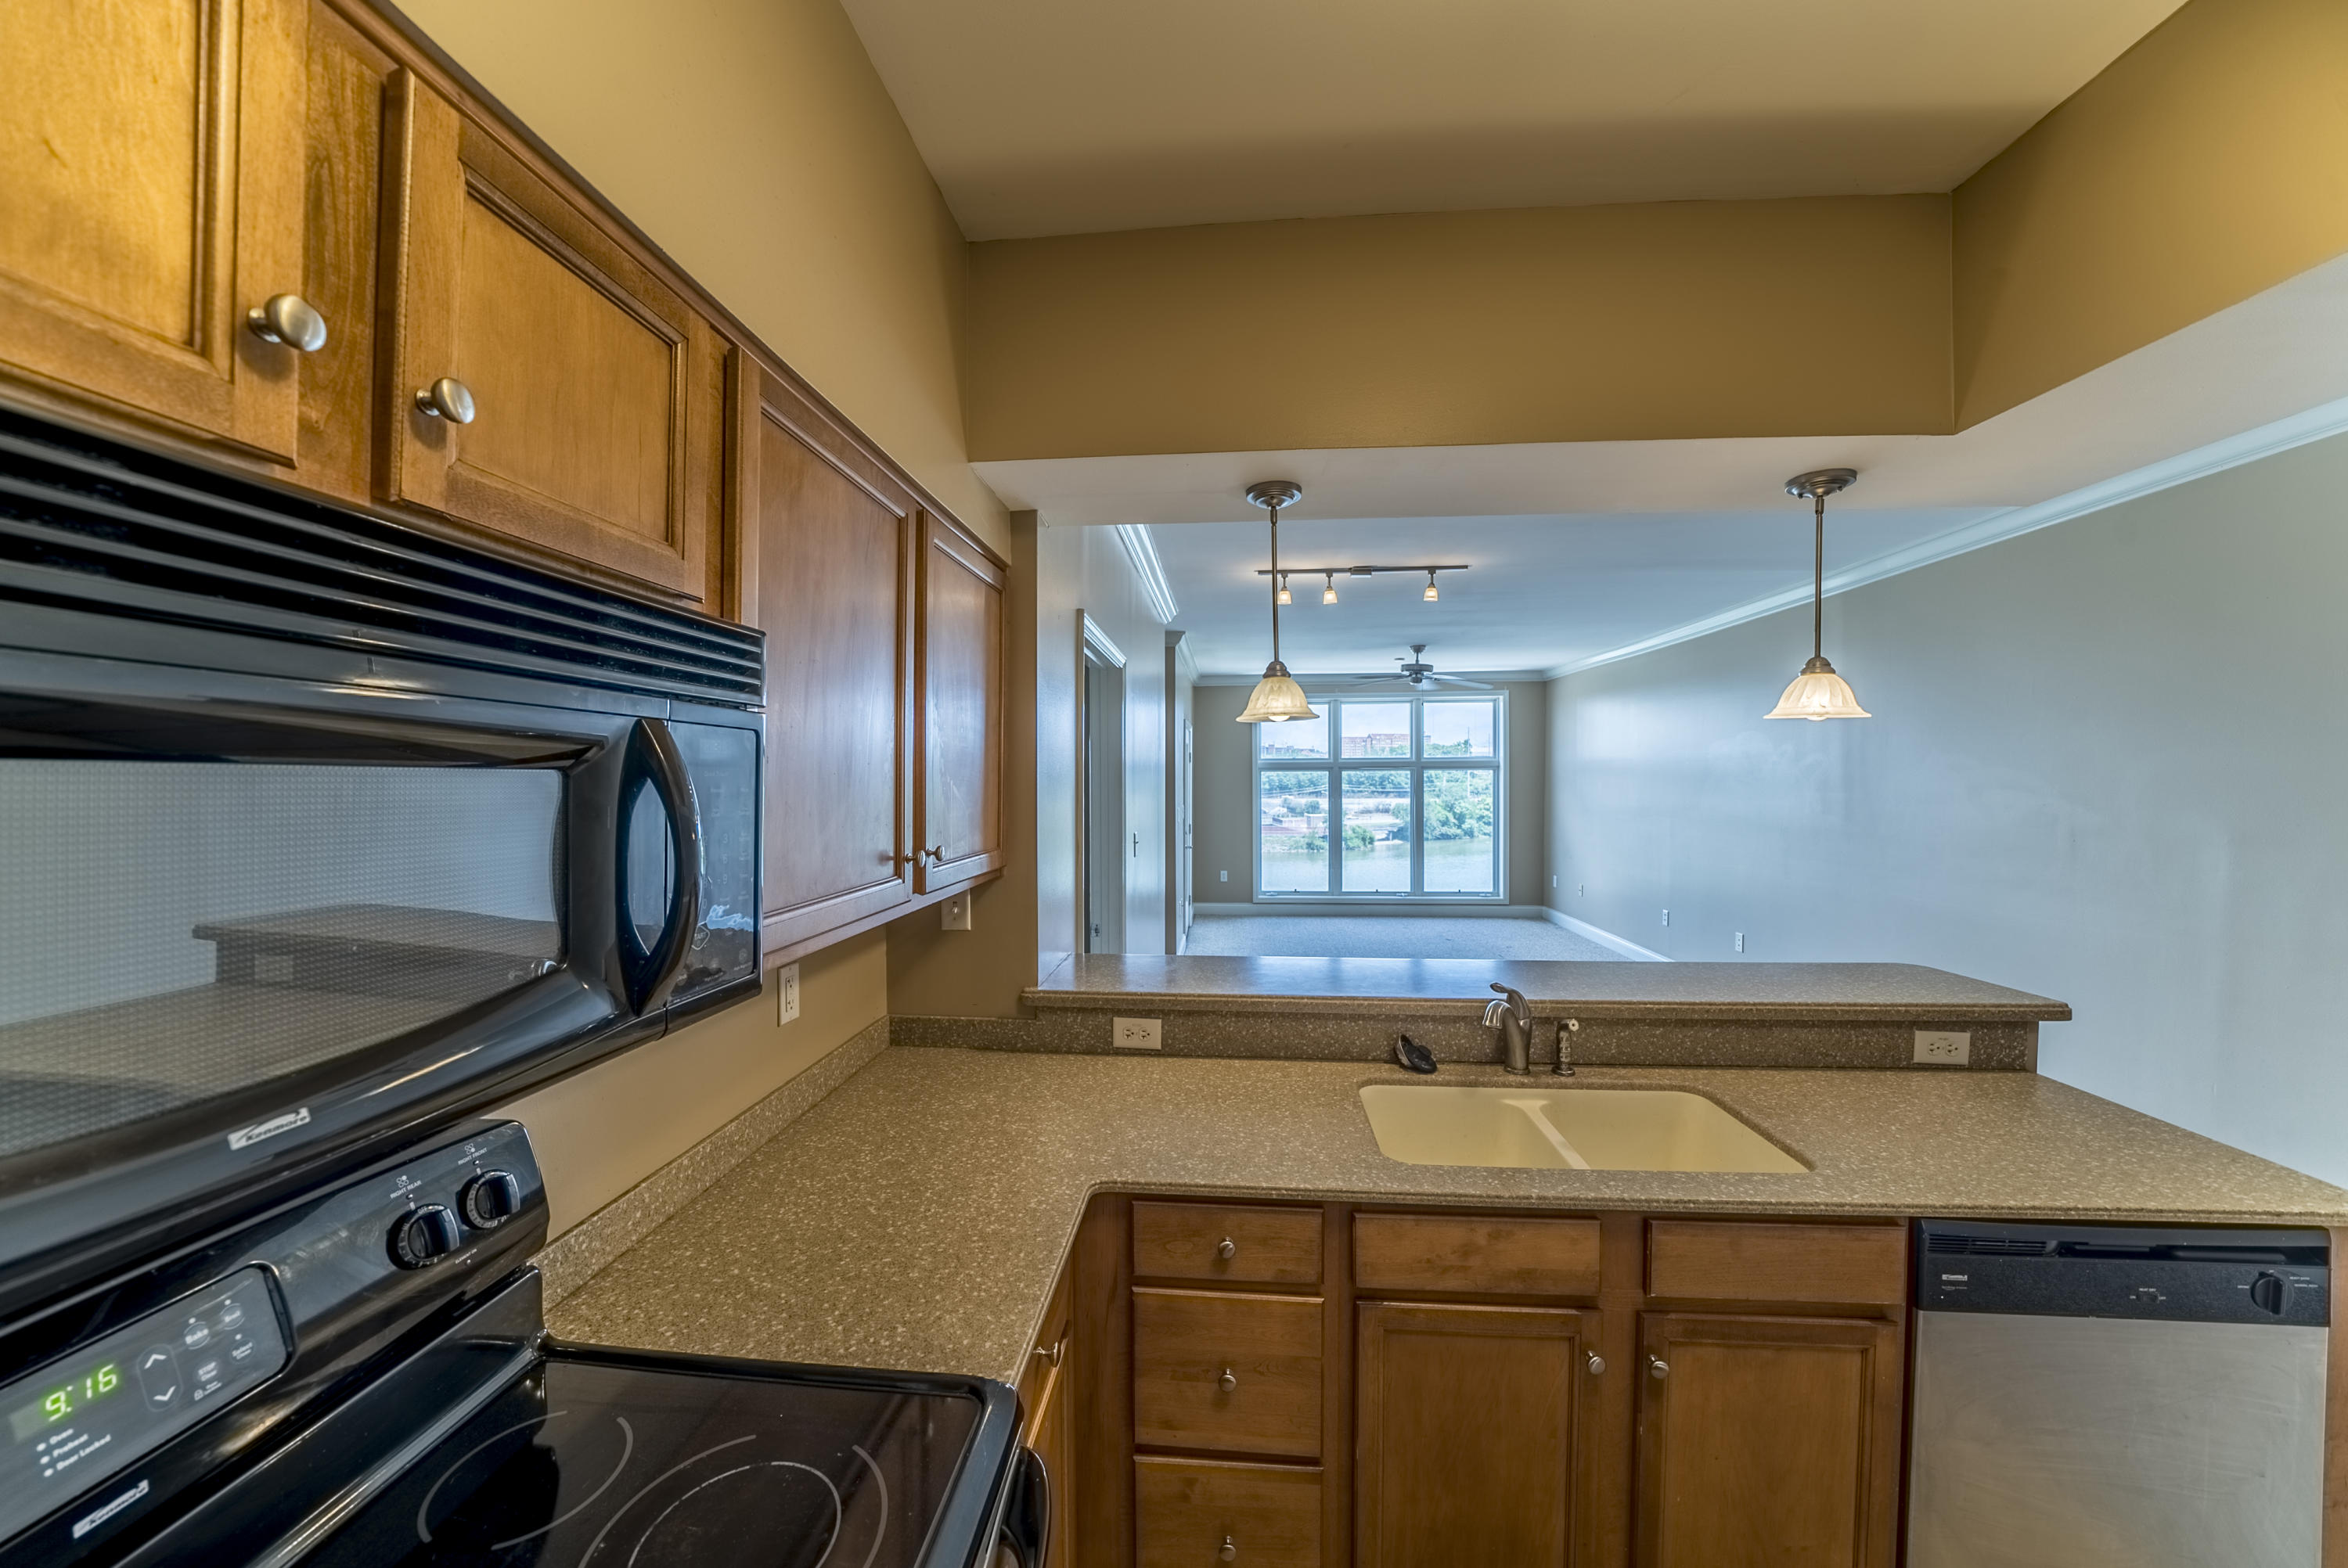 3001 River Towne Way 502: